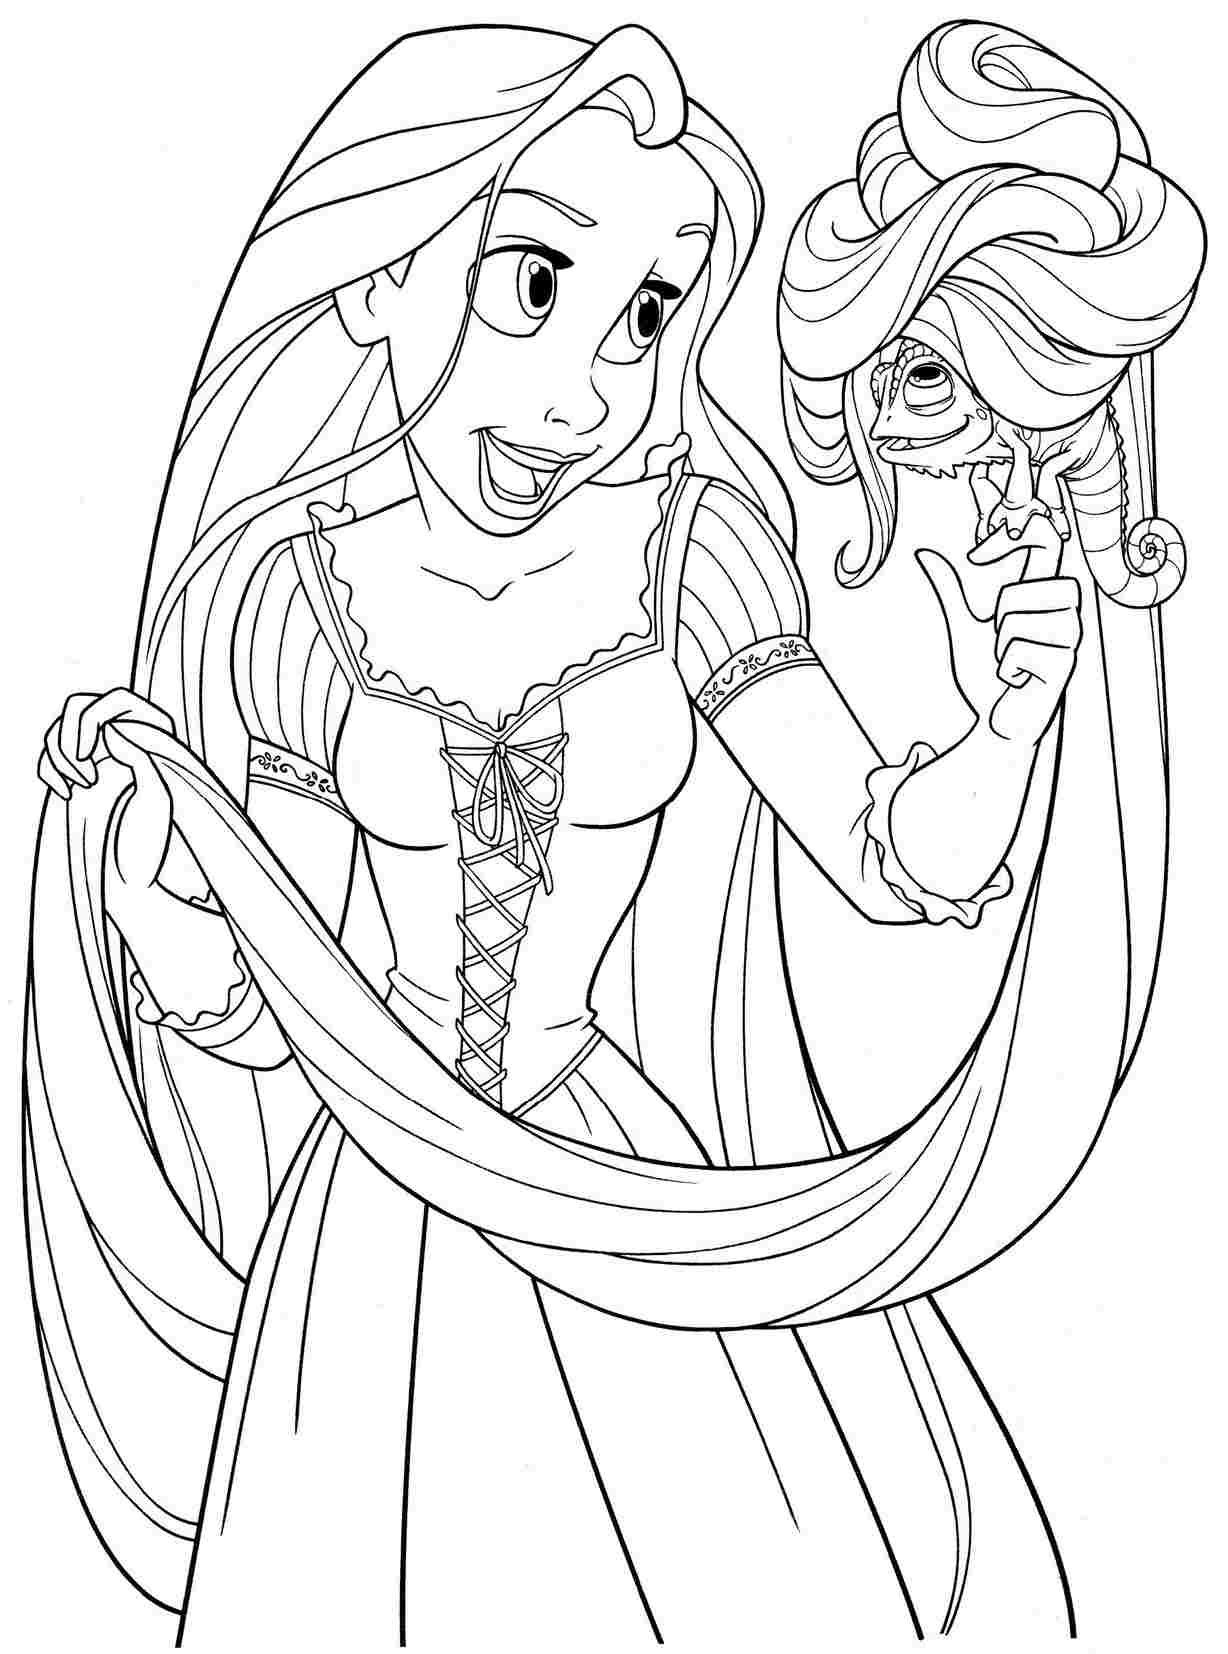 Disney Princesses Together Coloring Pages At Getdrawings Com Free